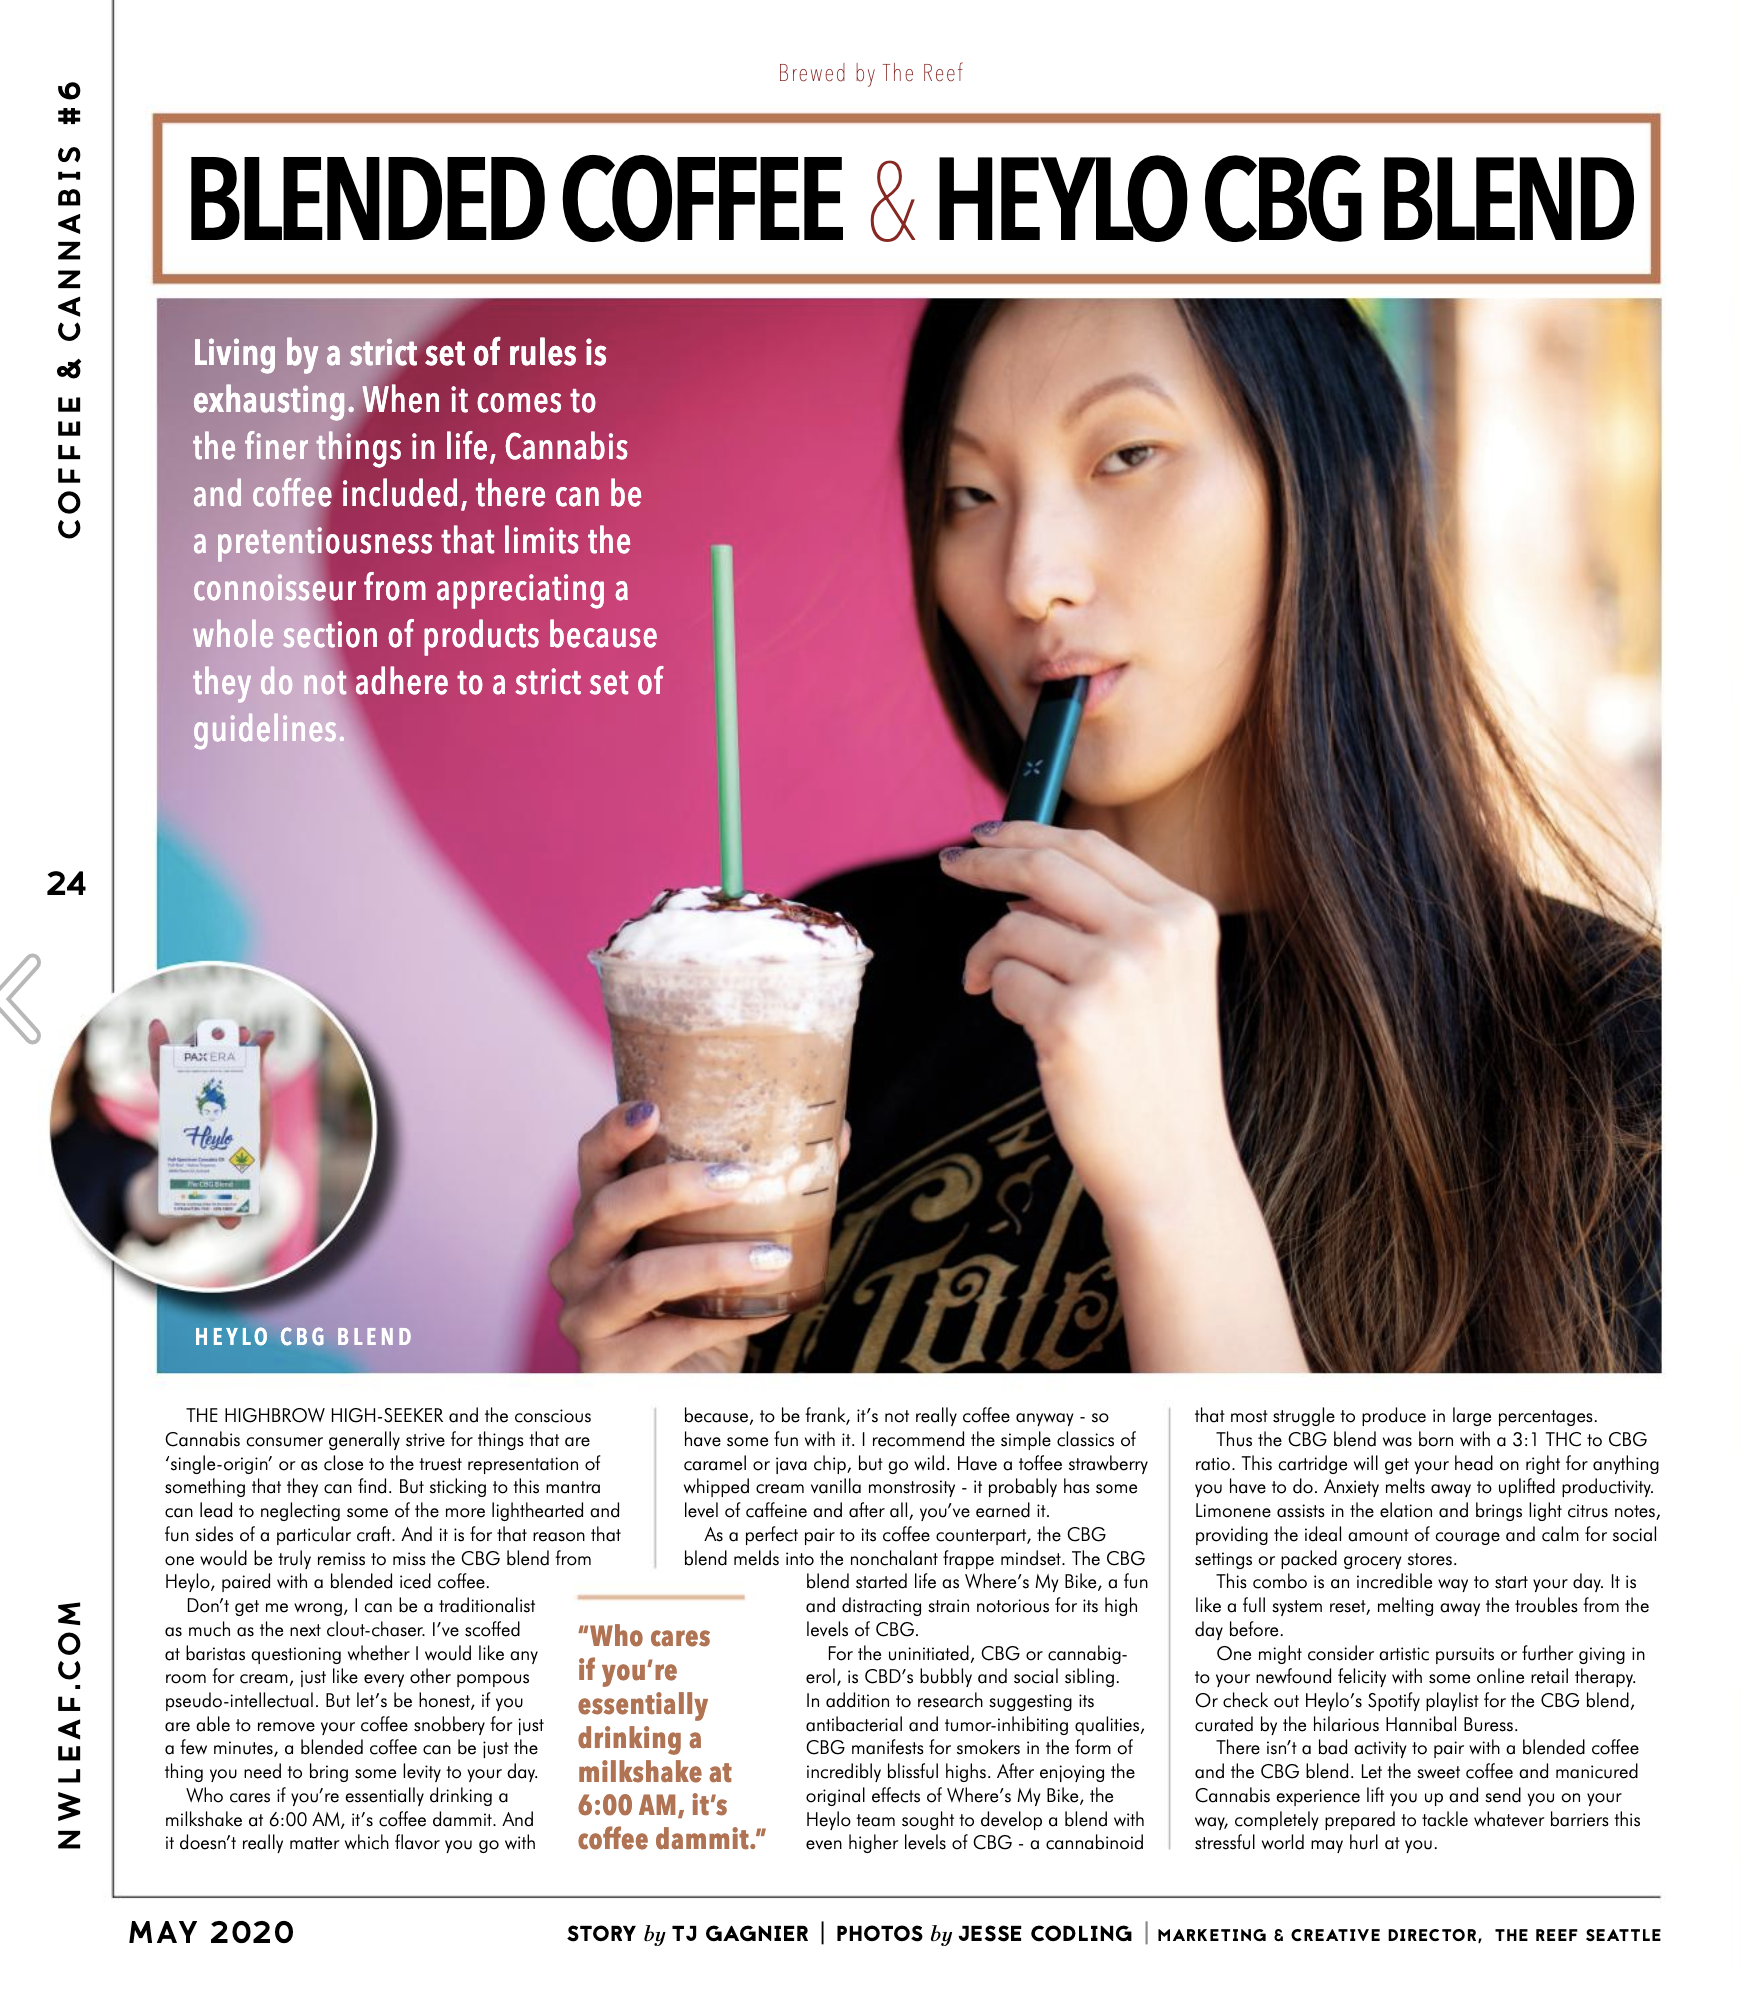 THE CBG Blend with coffee - a cannabis and caffeine pairing